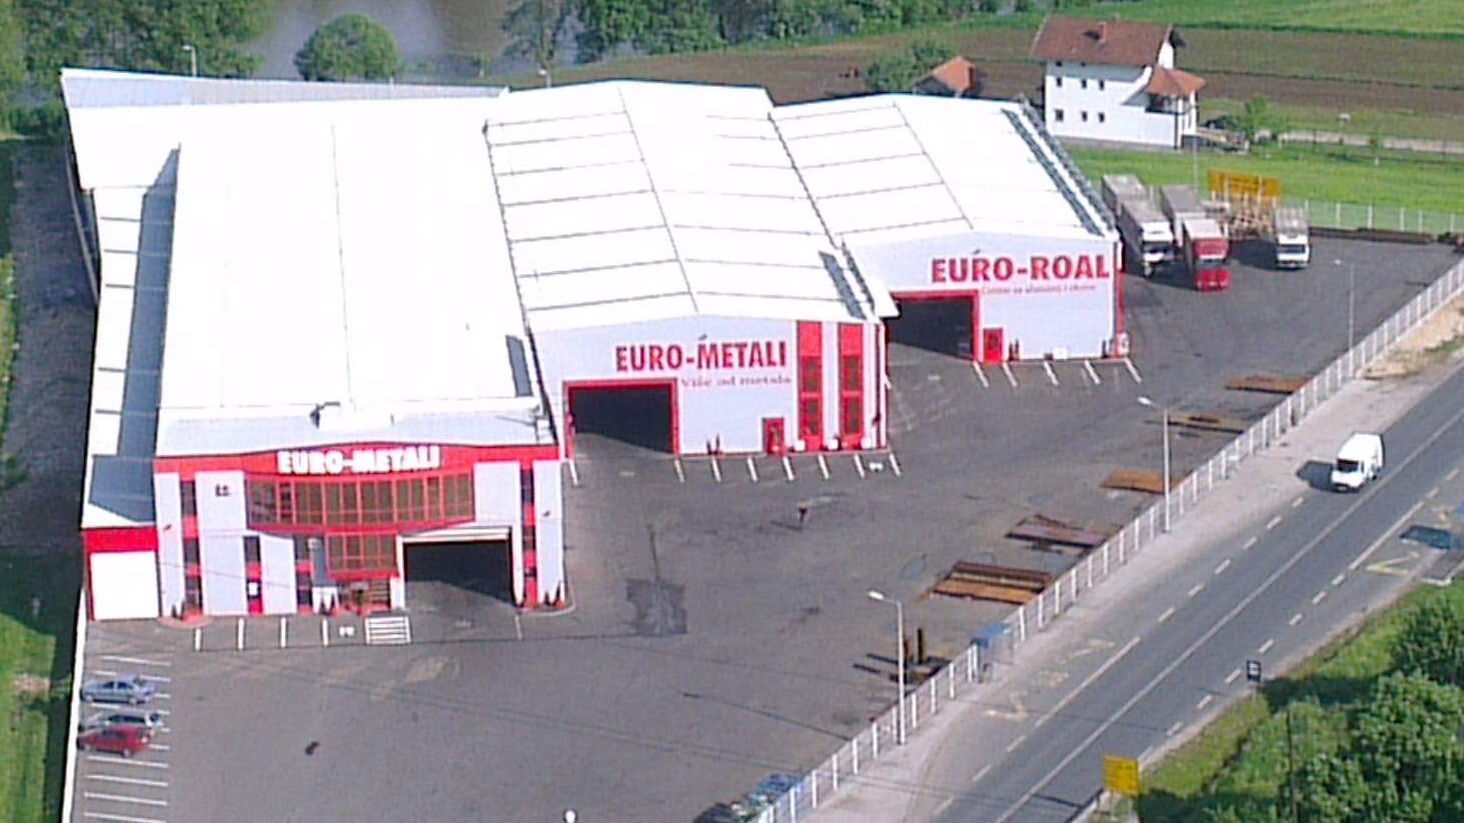 New investment of Euro - metal: An industrial hall of 5.500 m2 is being built